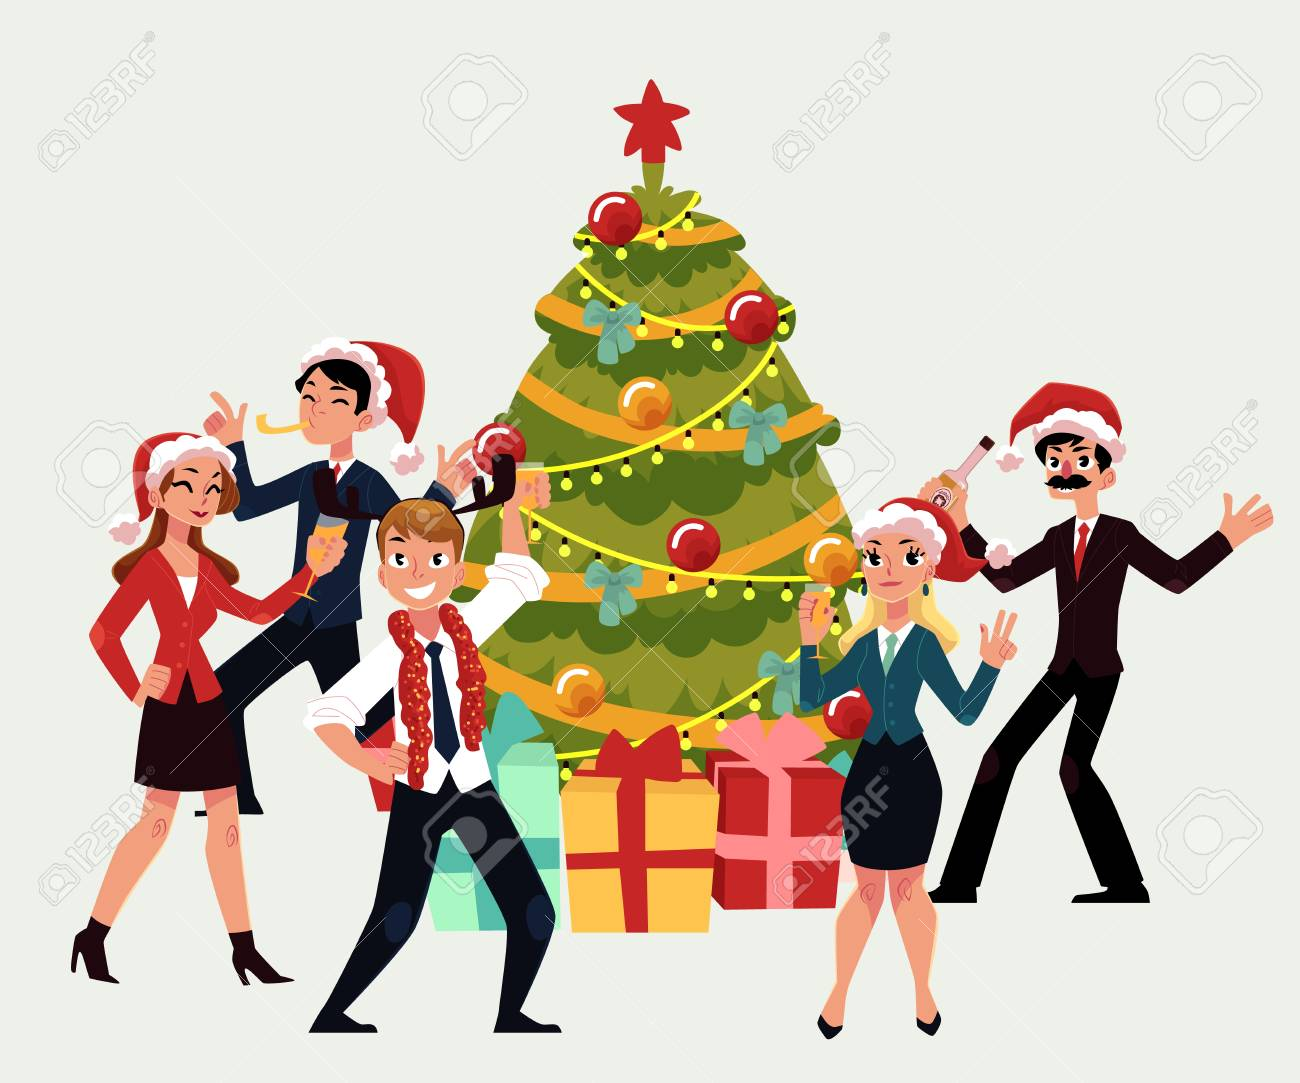 Christmas Party Images Cartoon.Happy People Having Corporate Xmas Party Dancing Around Christmas